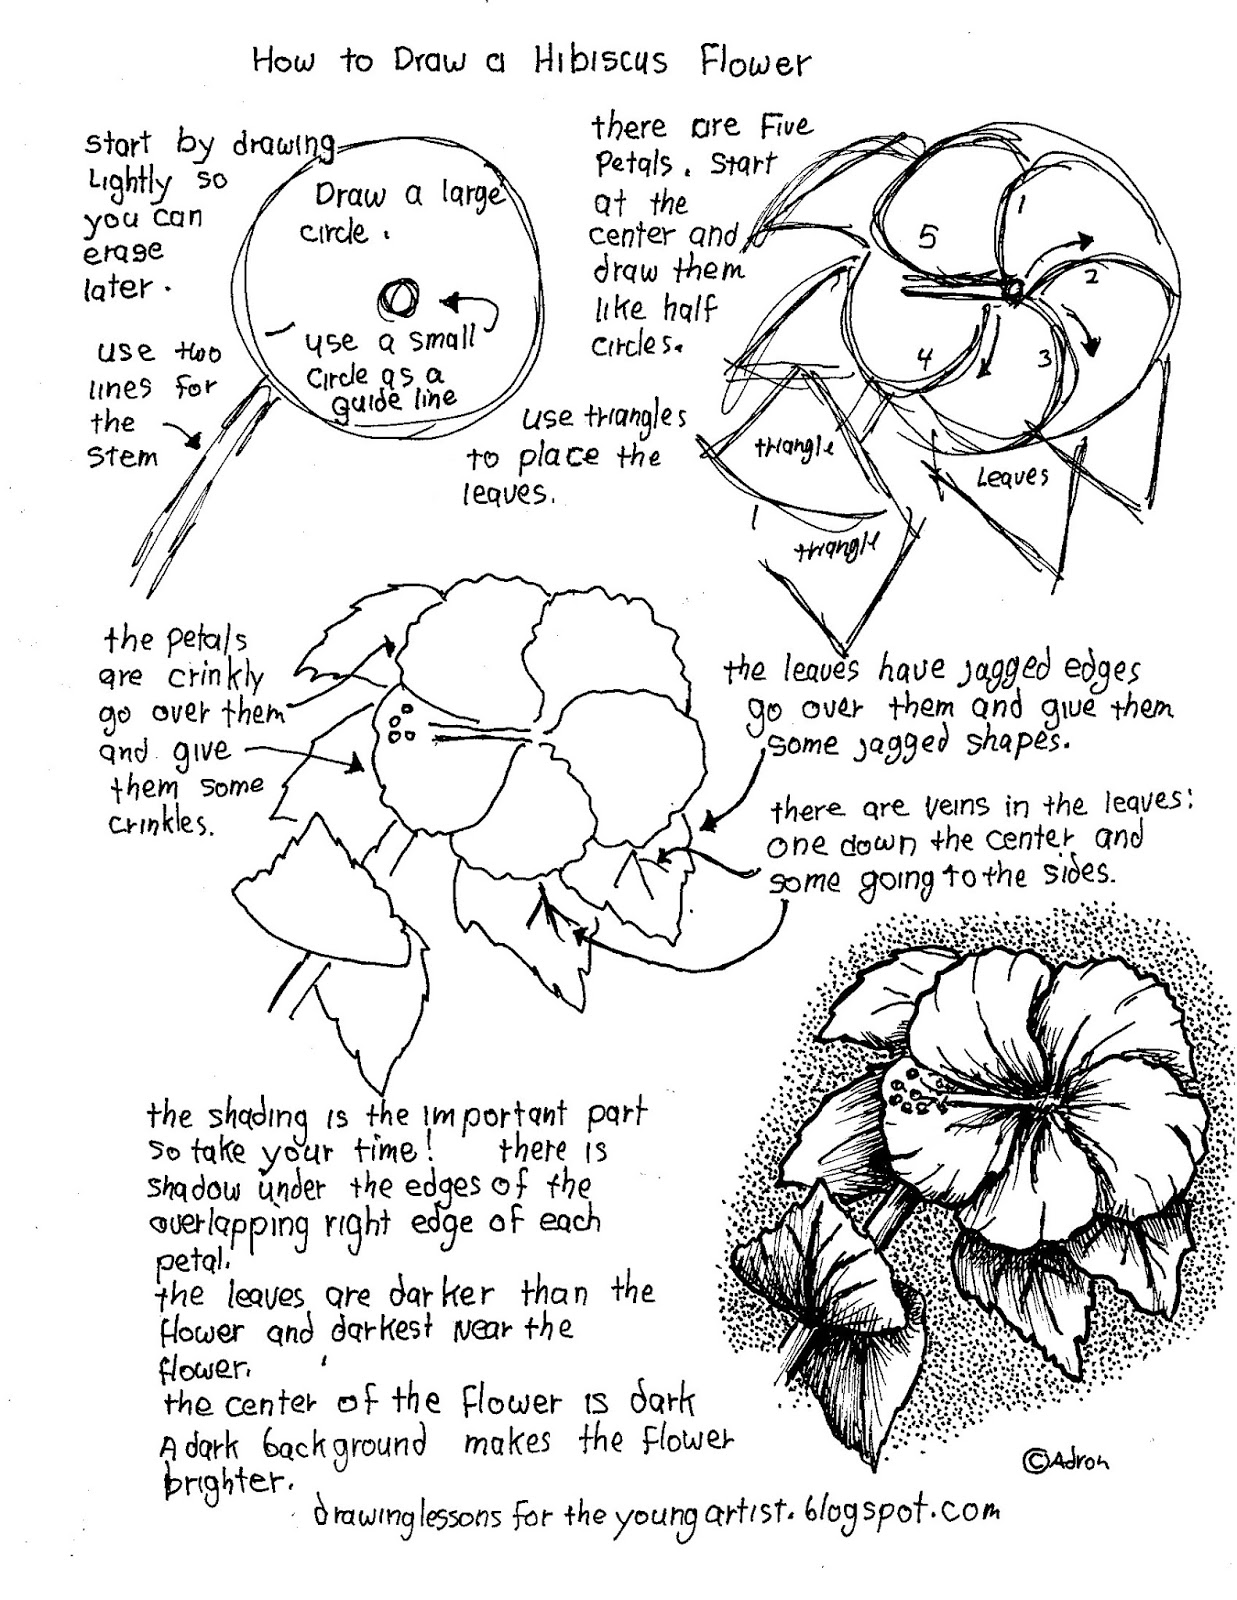 printable how to draw a hibiscus flower worksheet